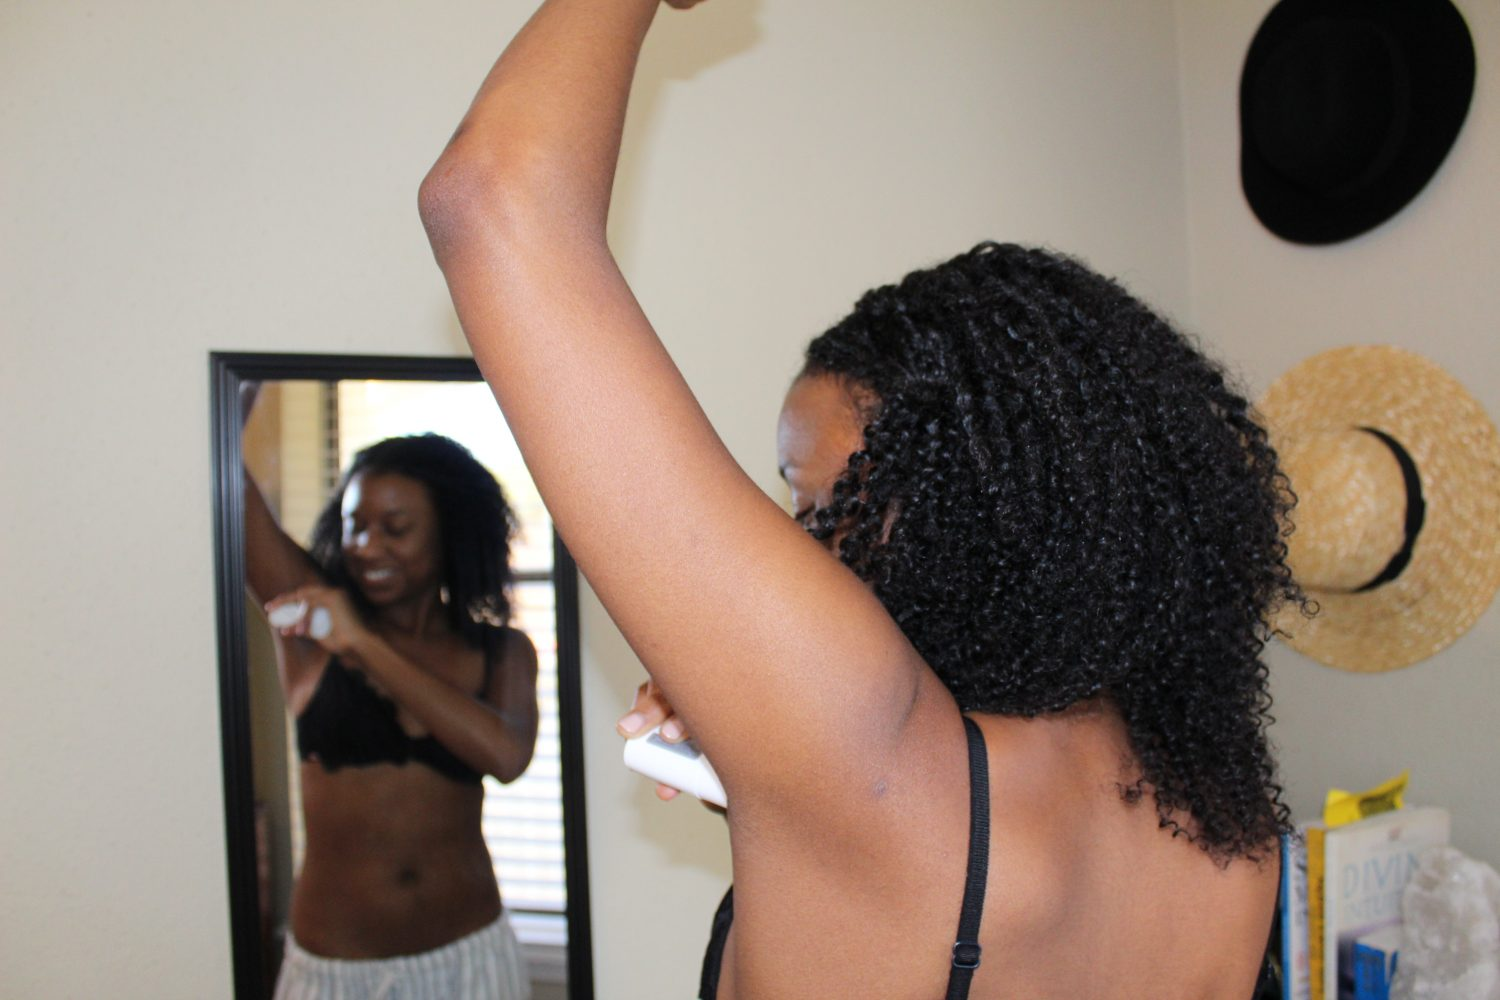 black woman in mirror